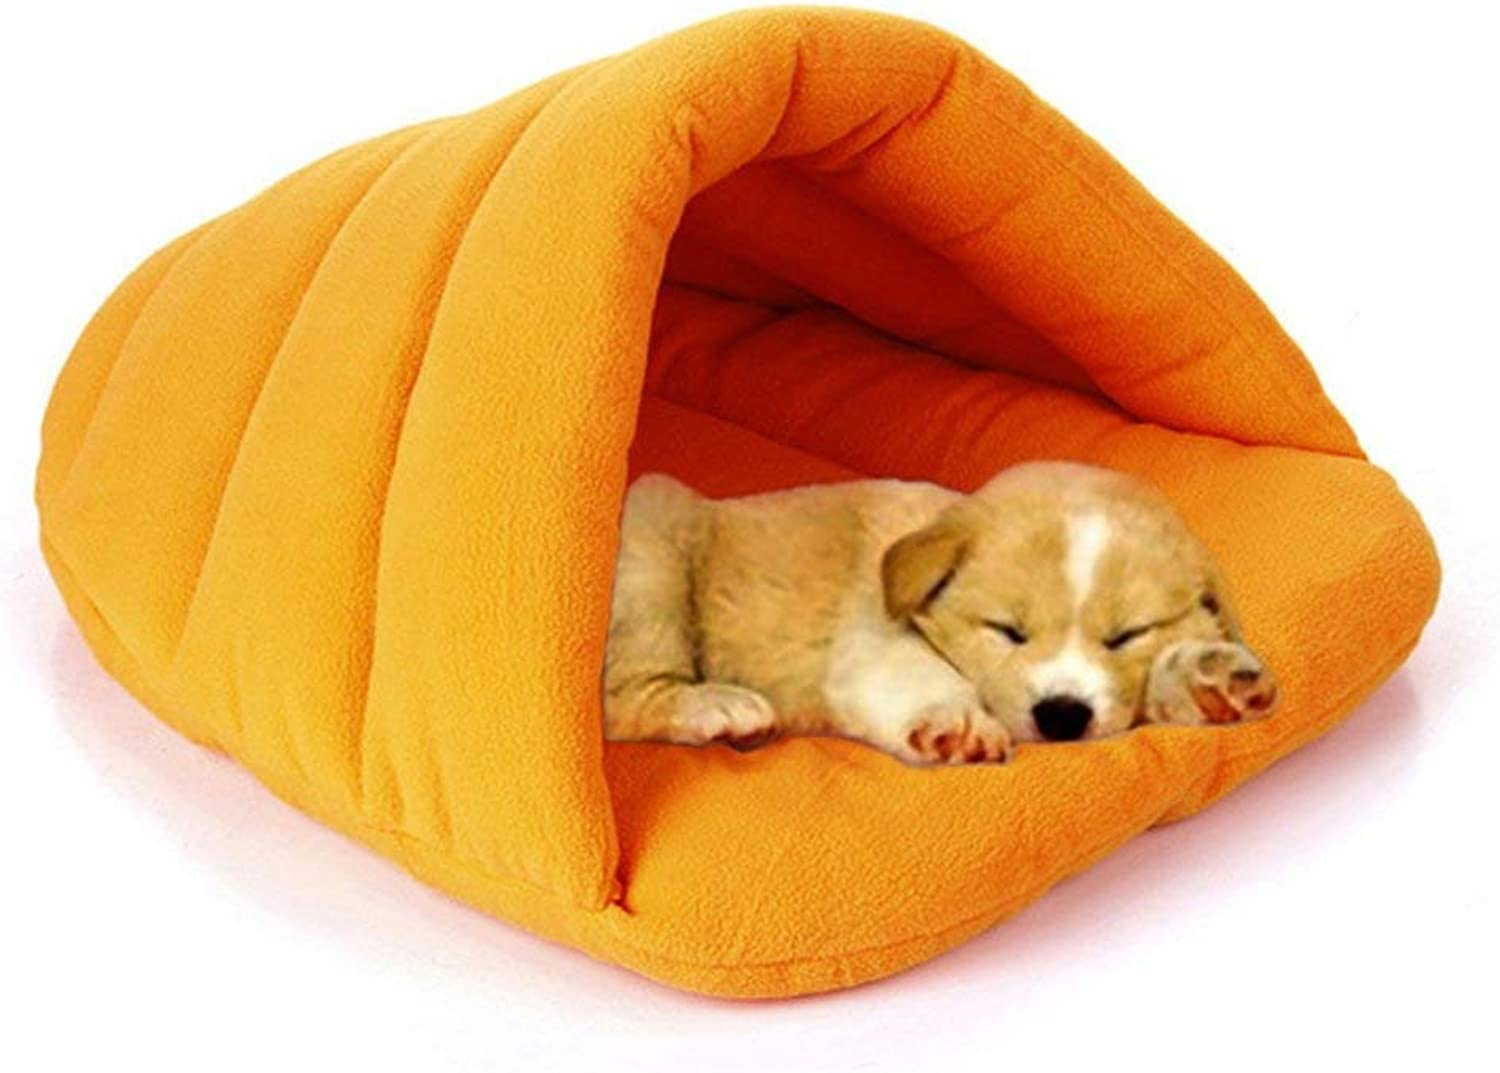 Dogs Sleeping Bag, Pets Cave Bed Half Covered Cuddle Cushion Kennel in Winter Warm Comfortable Pouch for Cats Rabbit Puppy,orange,L